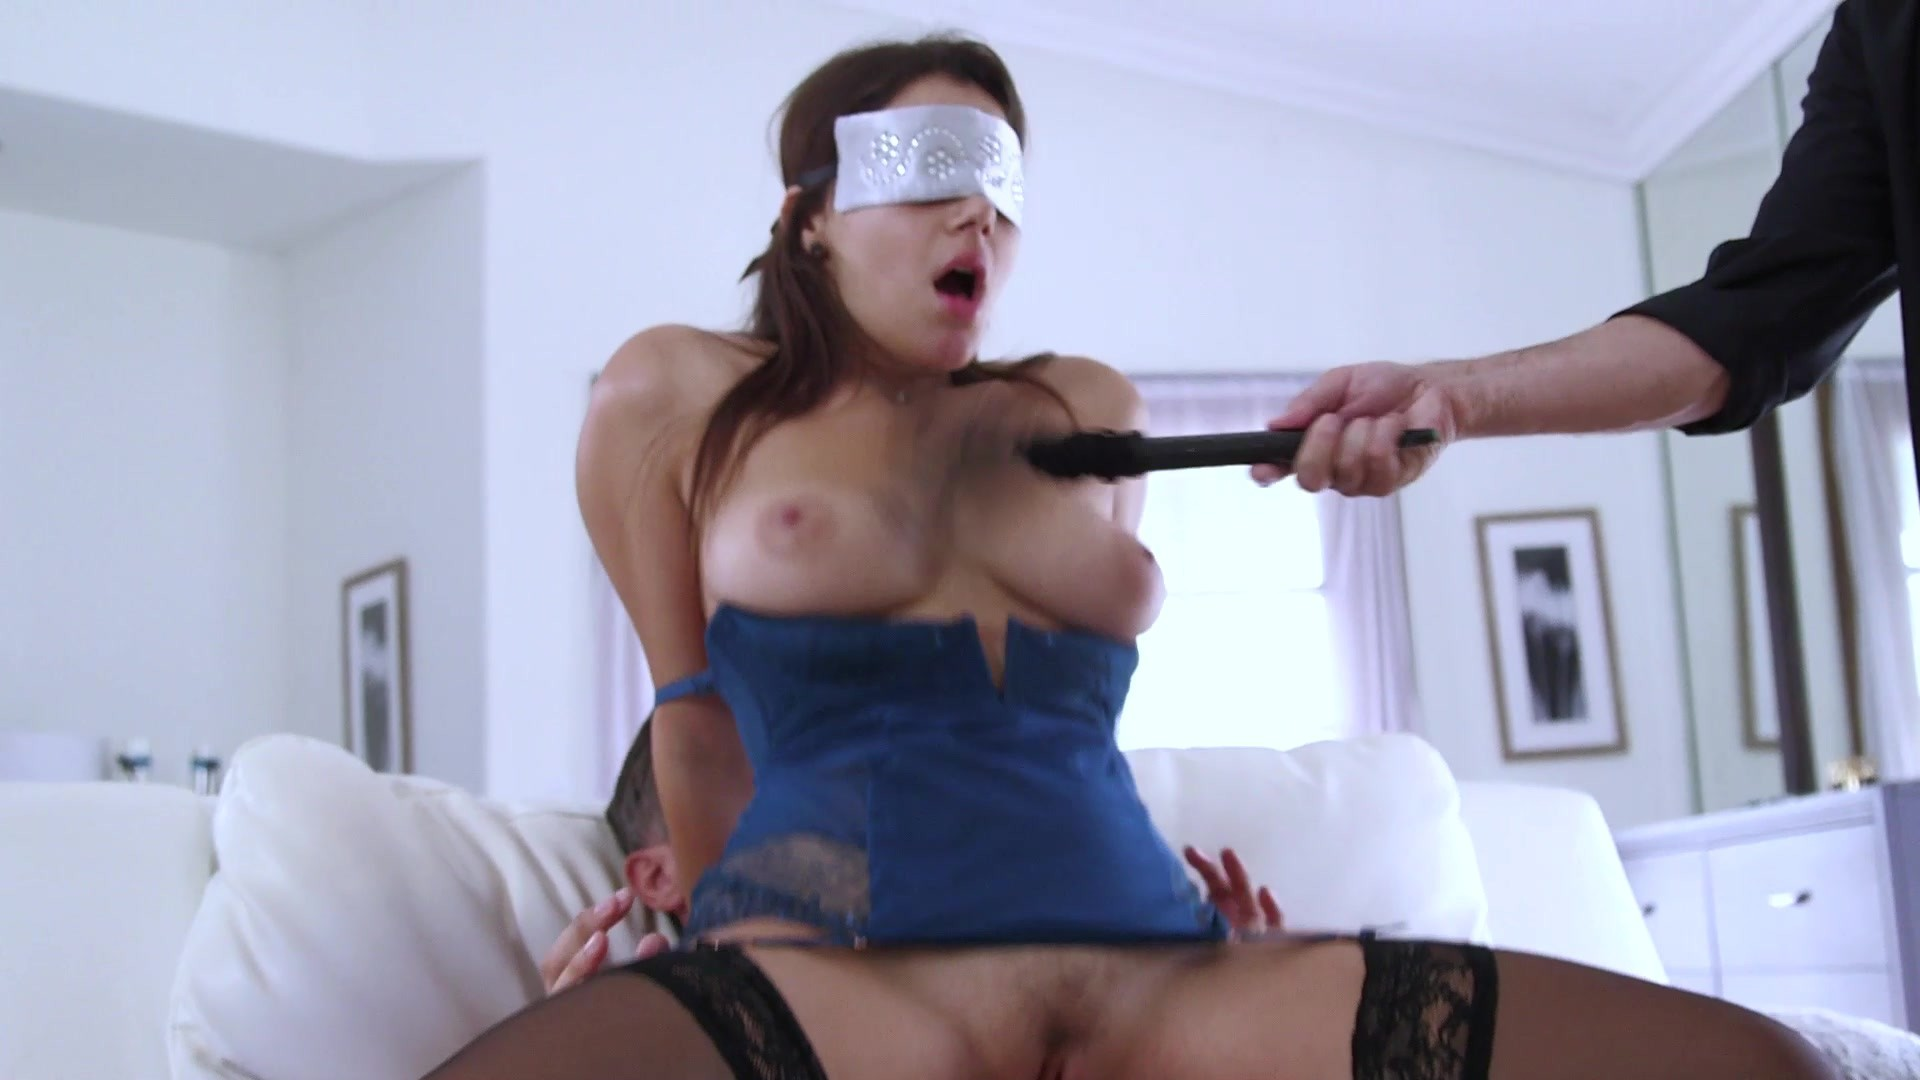 blindfolded sex videos